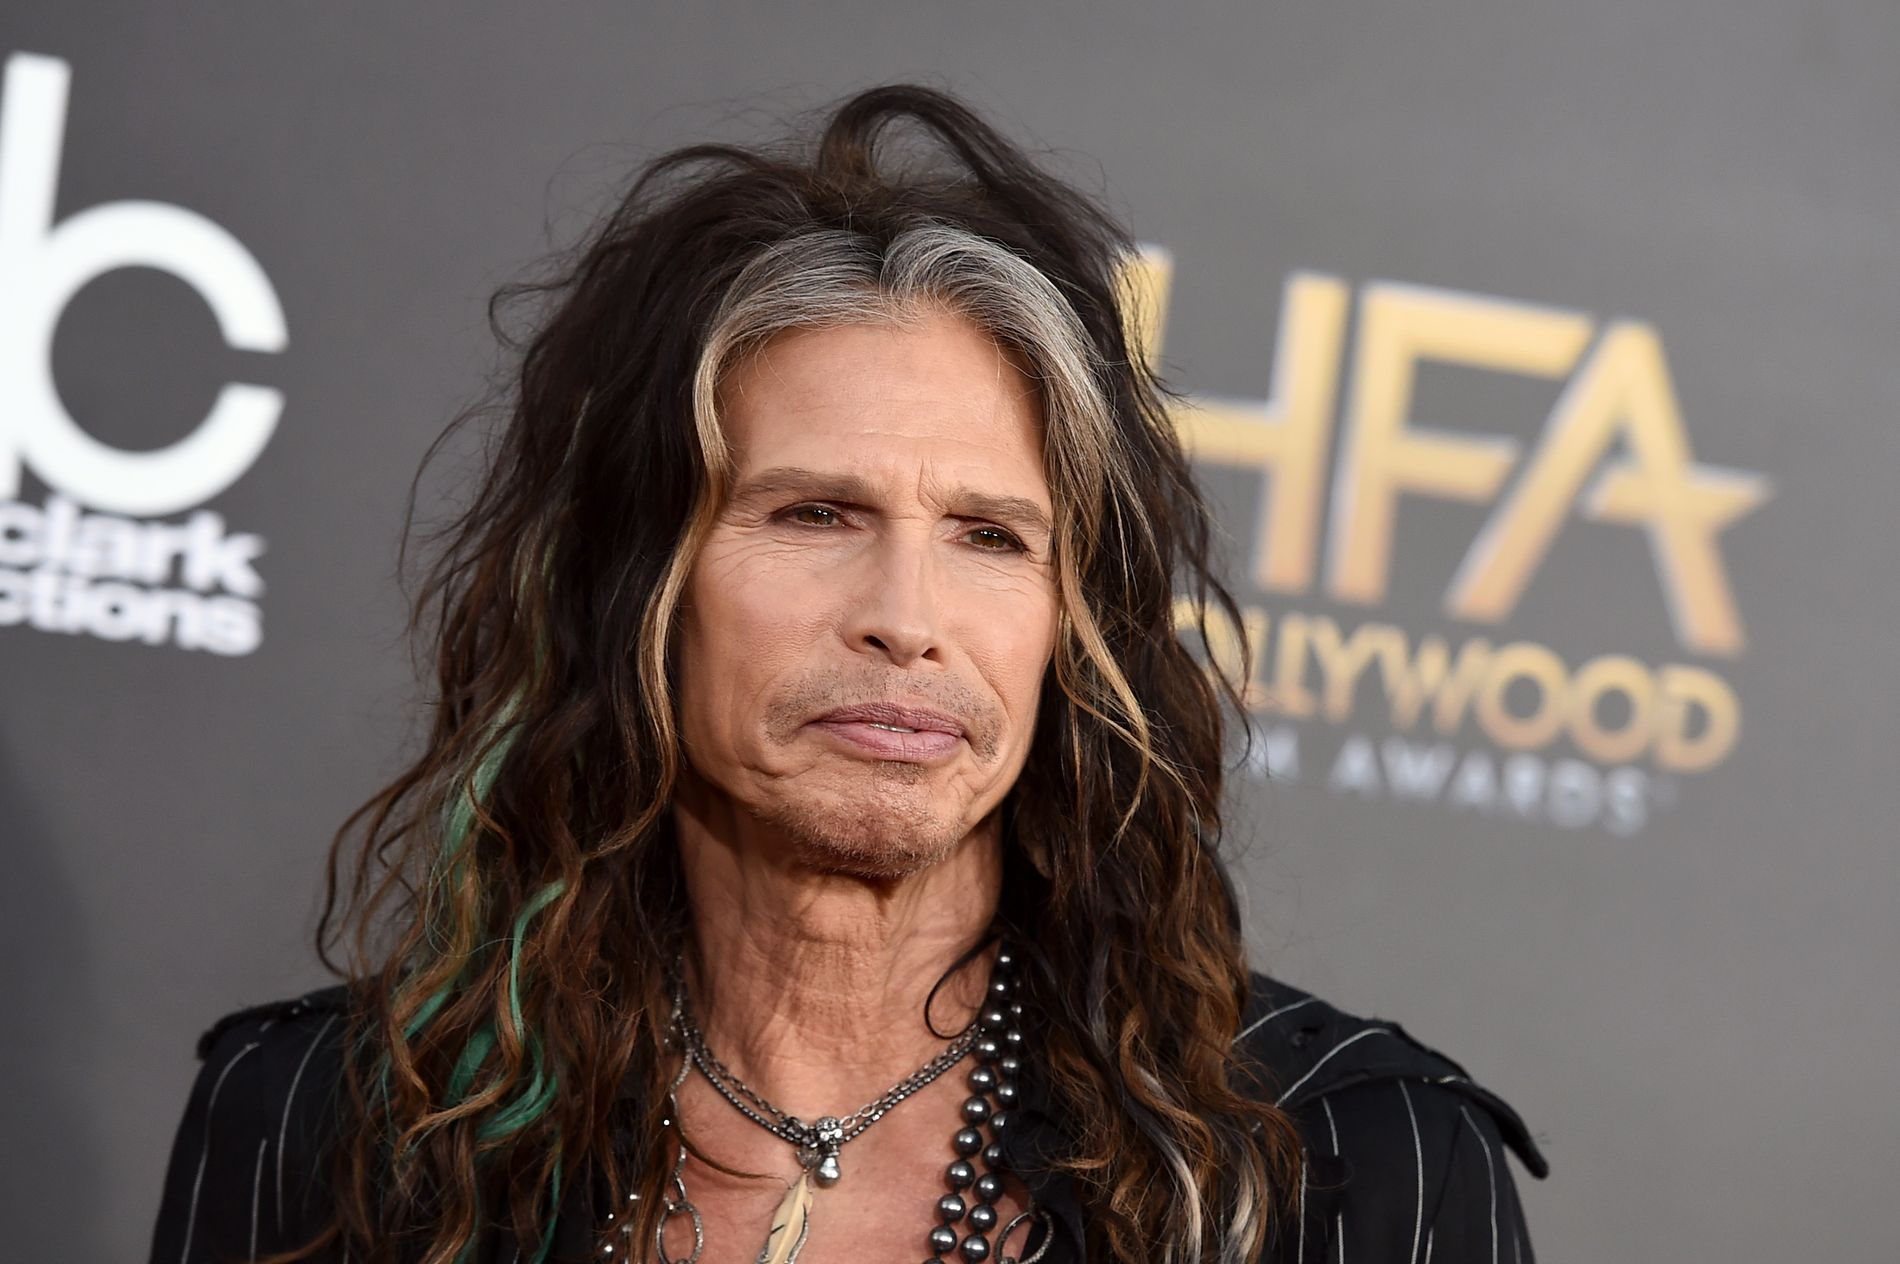 MUSIKERVETERAN: Steven Tyler, her under  Hollywood Film Awards i Los Angeles i 2014.